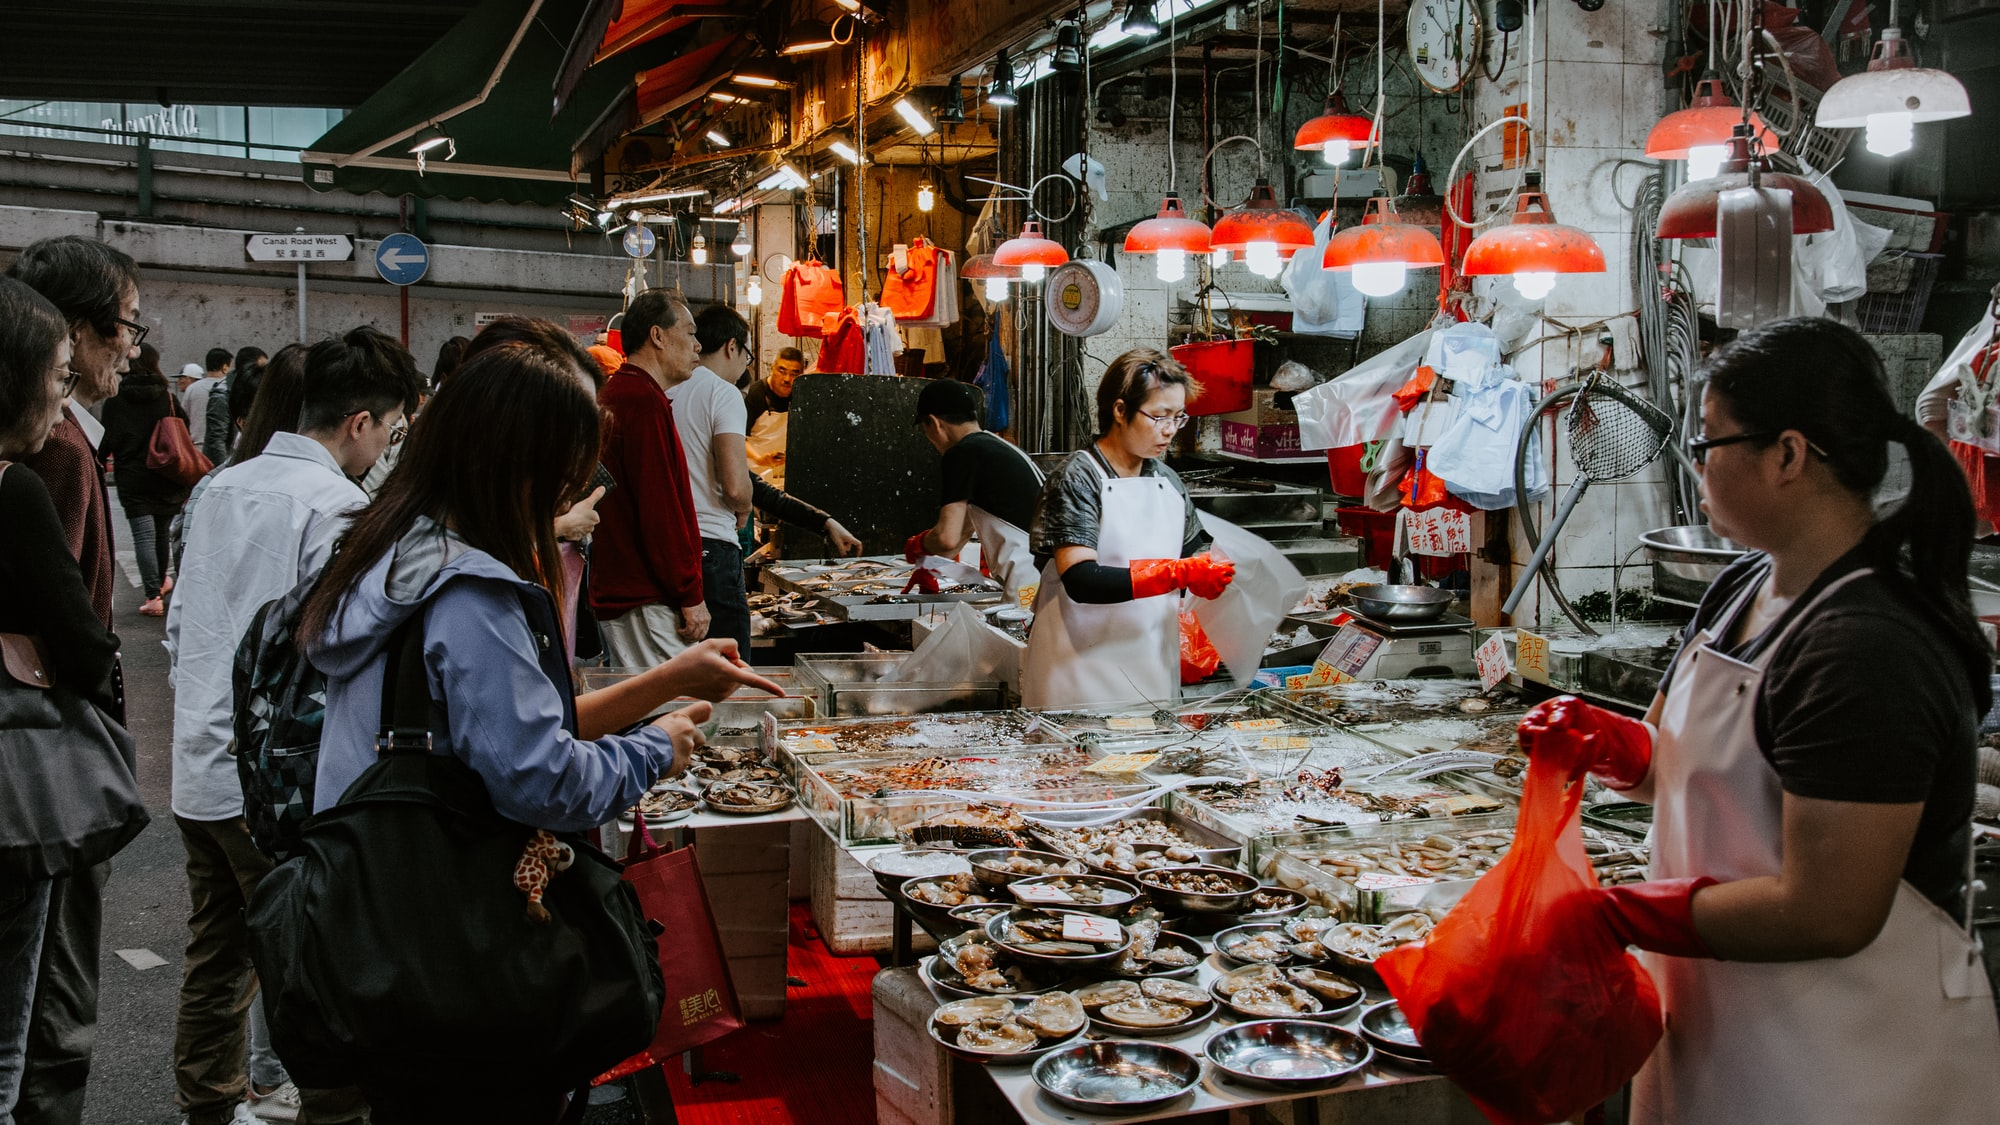 Early morning scene at a market in Hong Kong. This particular stall was selling seafood - it was interesting to see as this was in an alley that is close to tall buildings and housing area. So there were also a lot of people heading to work.